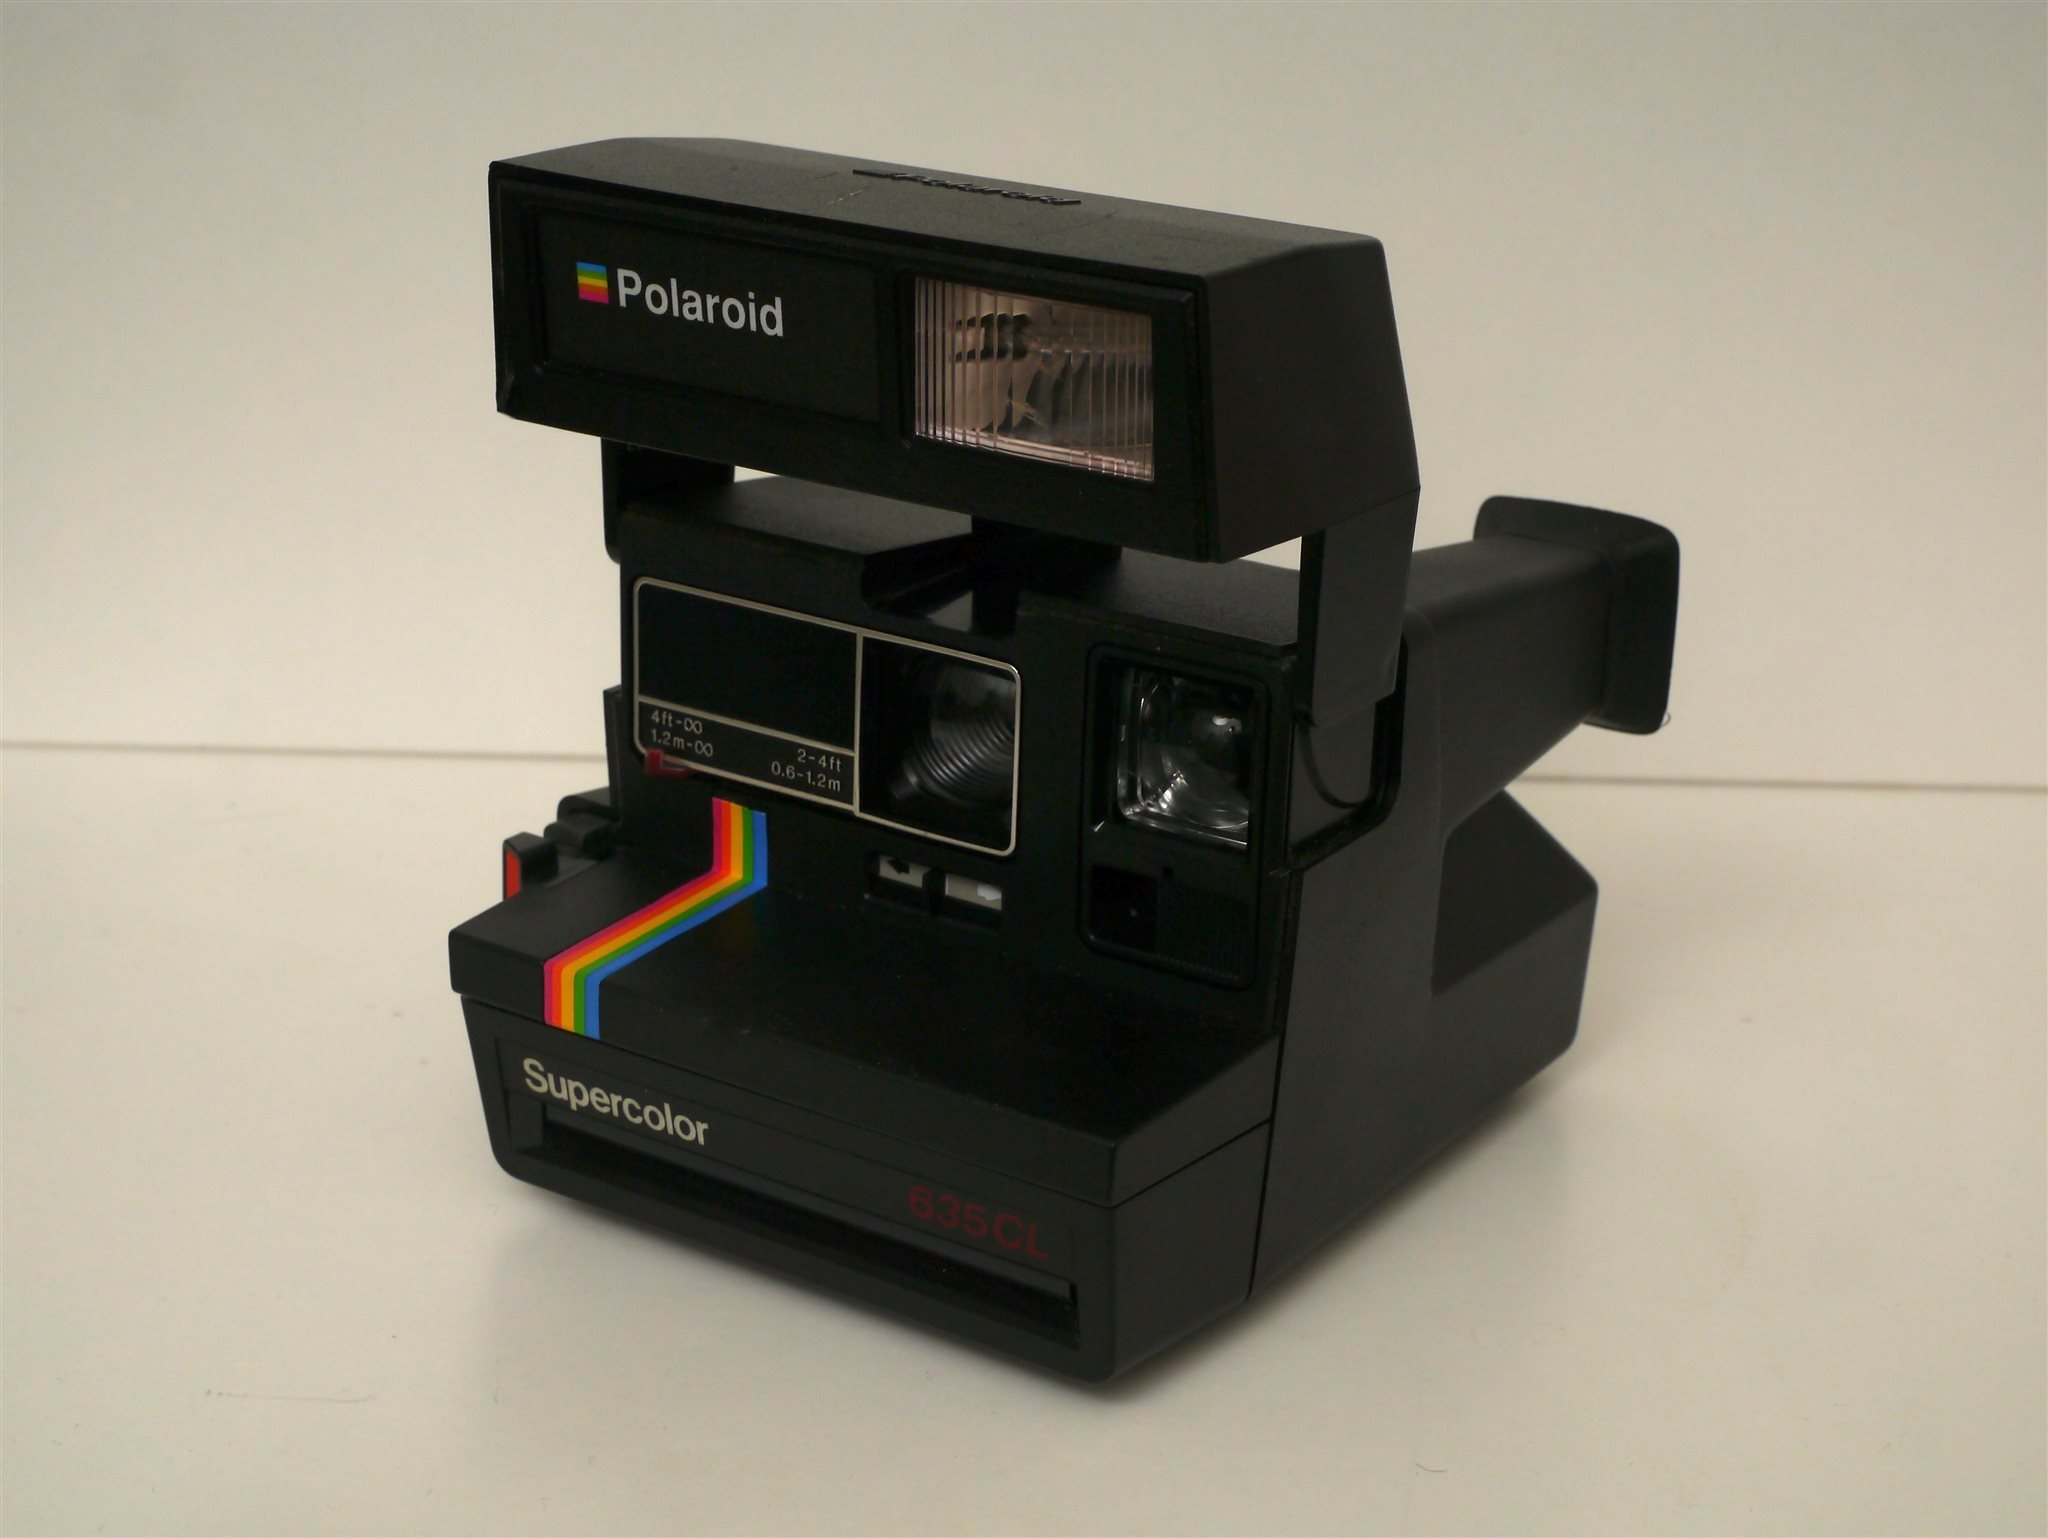 Polaroid Supercolor 635CL kamera Made in UK